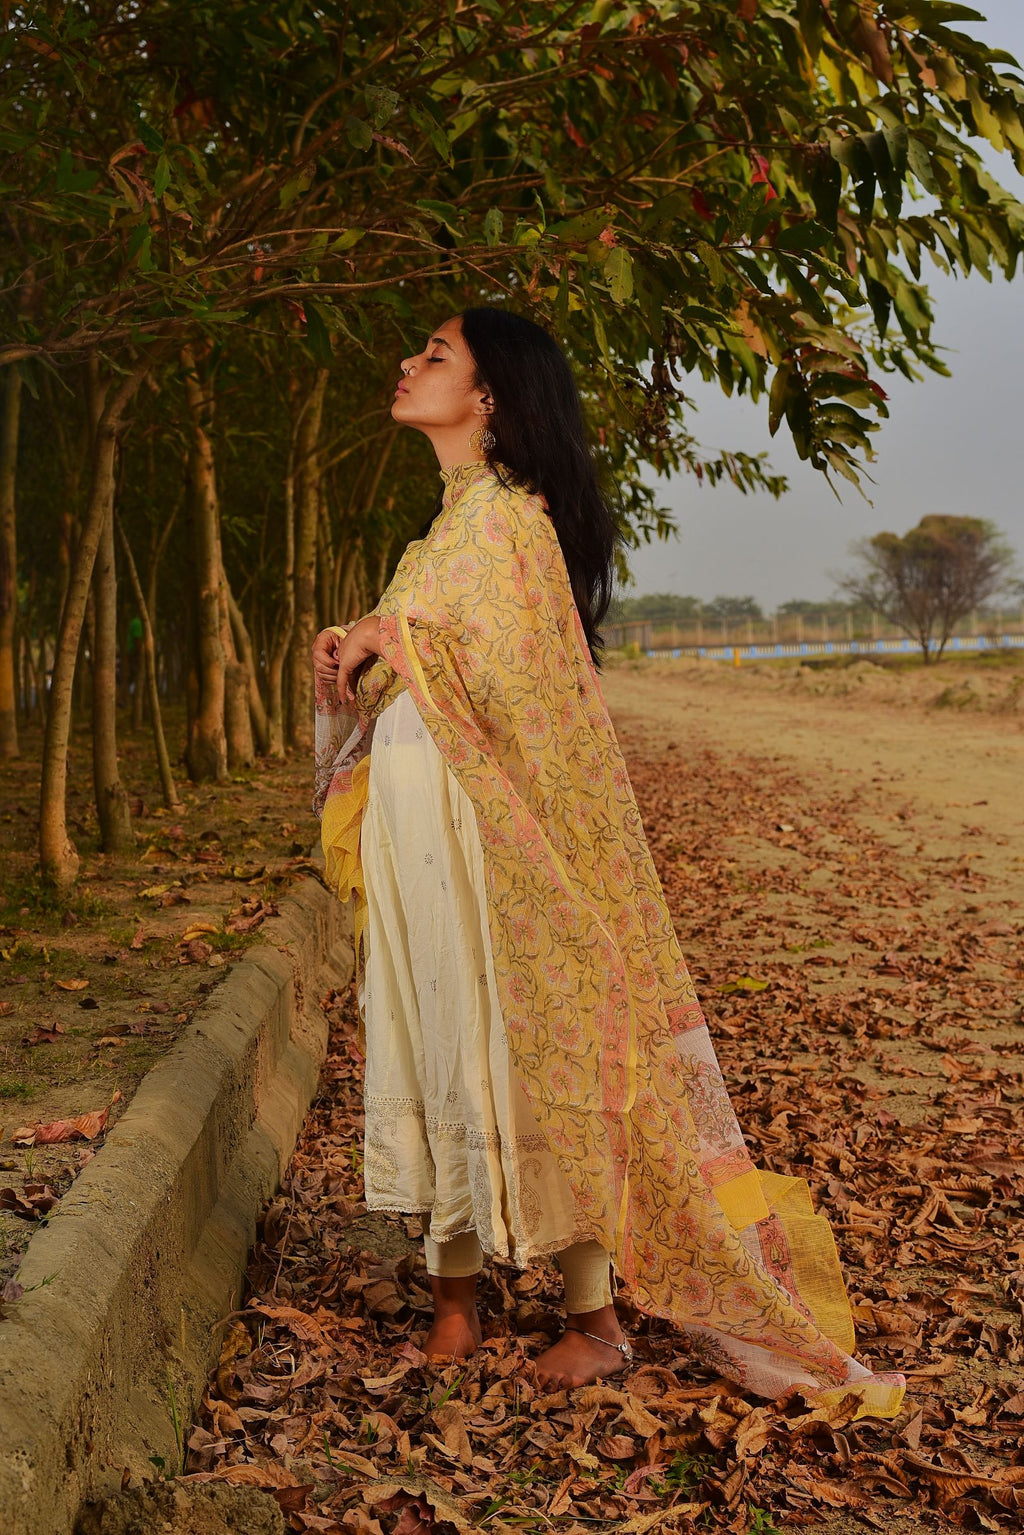 Kaisori Noor collection - Kota yellow block print dupatta - Kaisori